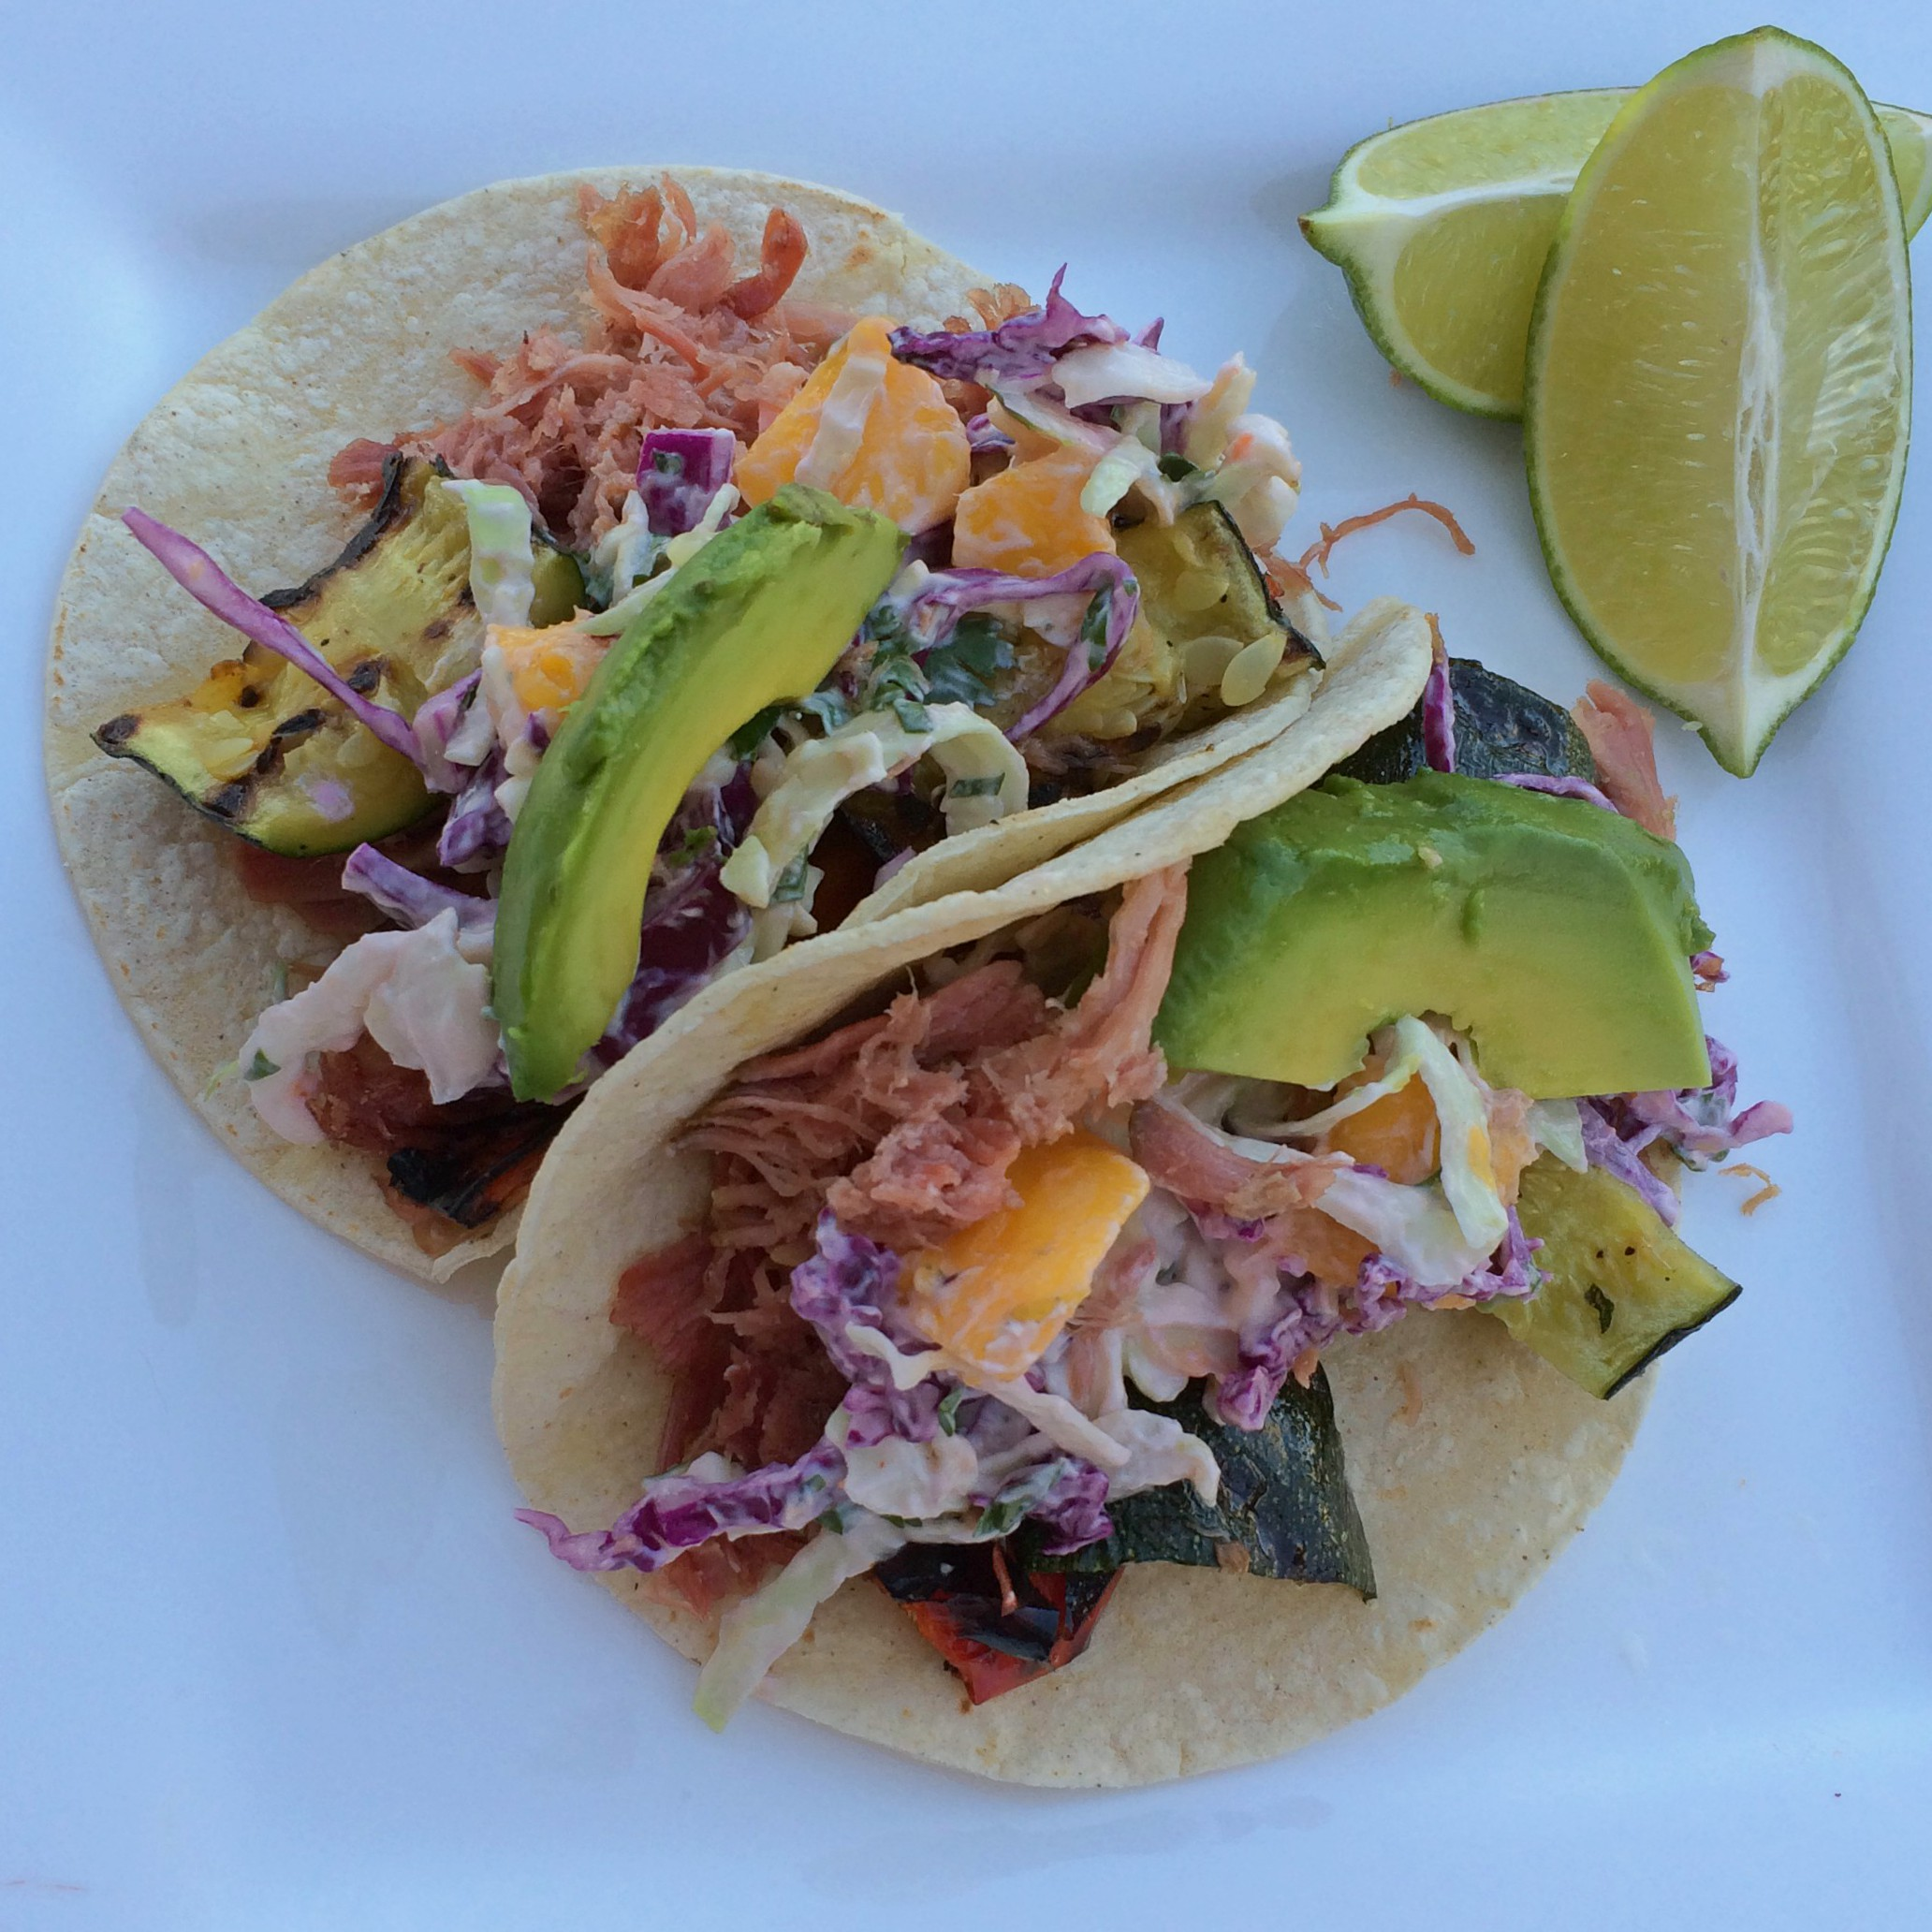 Pulled Pork and Veggie Tacos with Spicy Mango Slaw